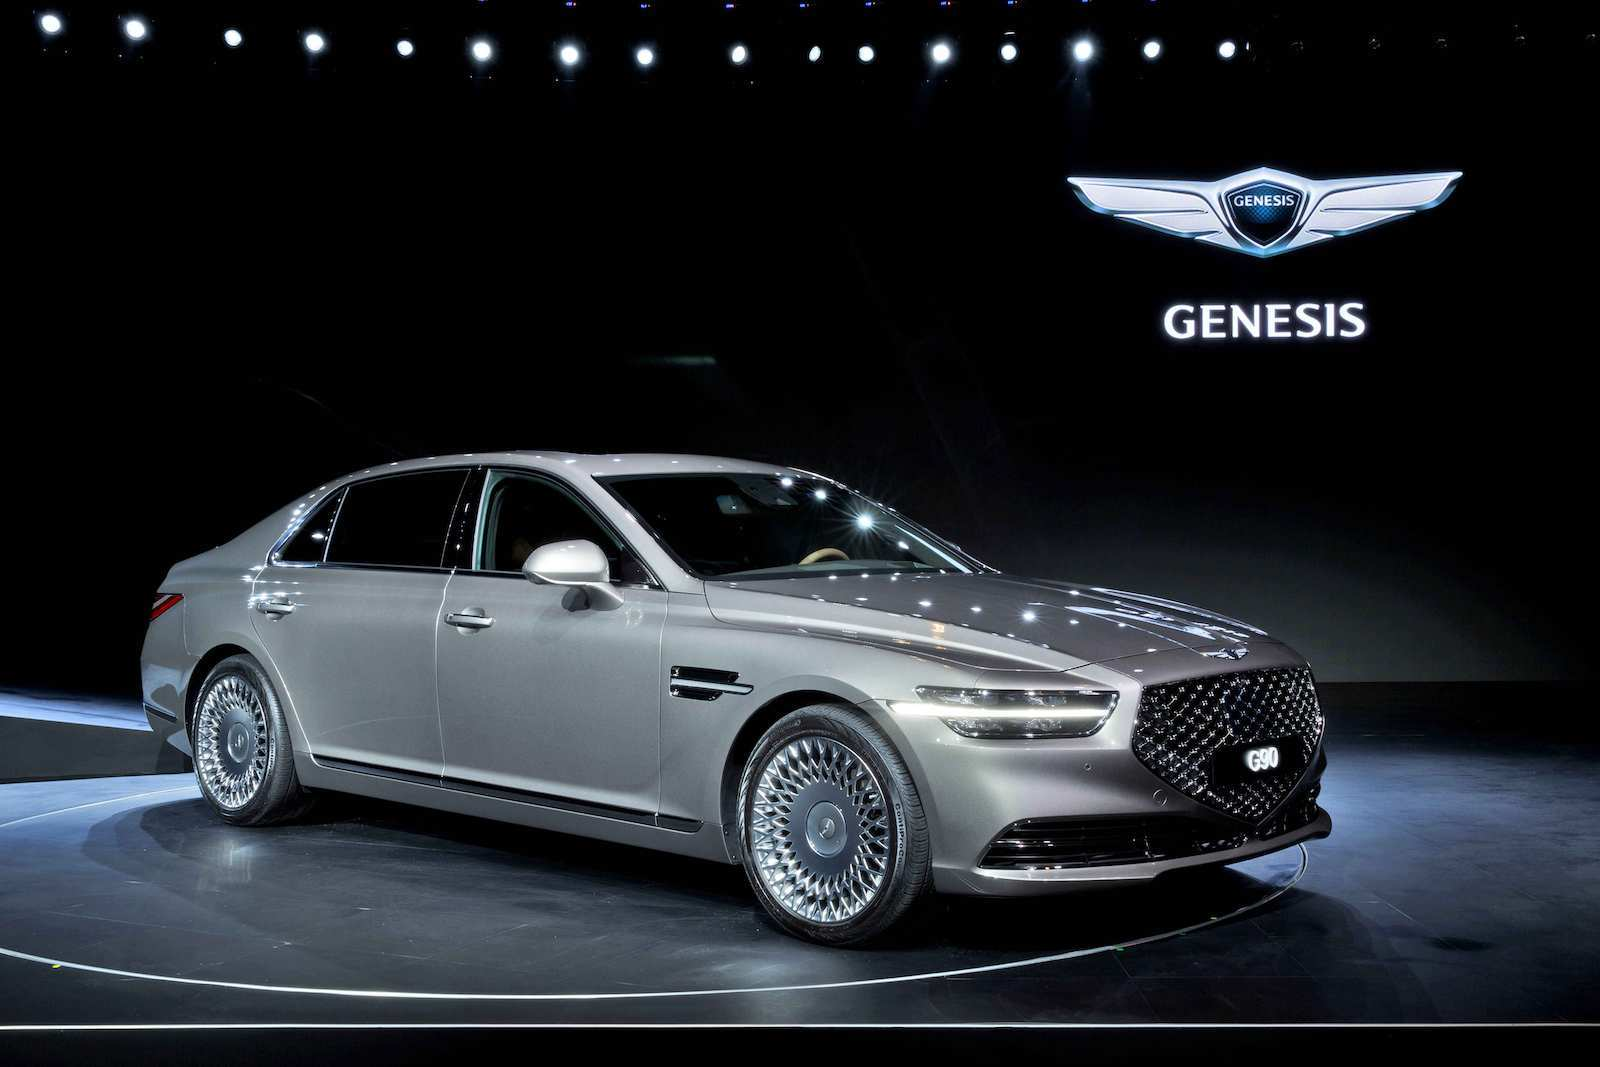 33 Gallery of 2019 Genesis G90 Interior with 2019 Genesis G90